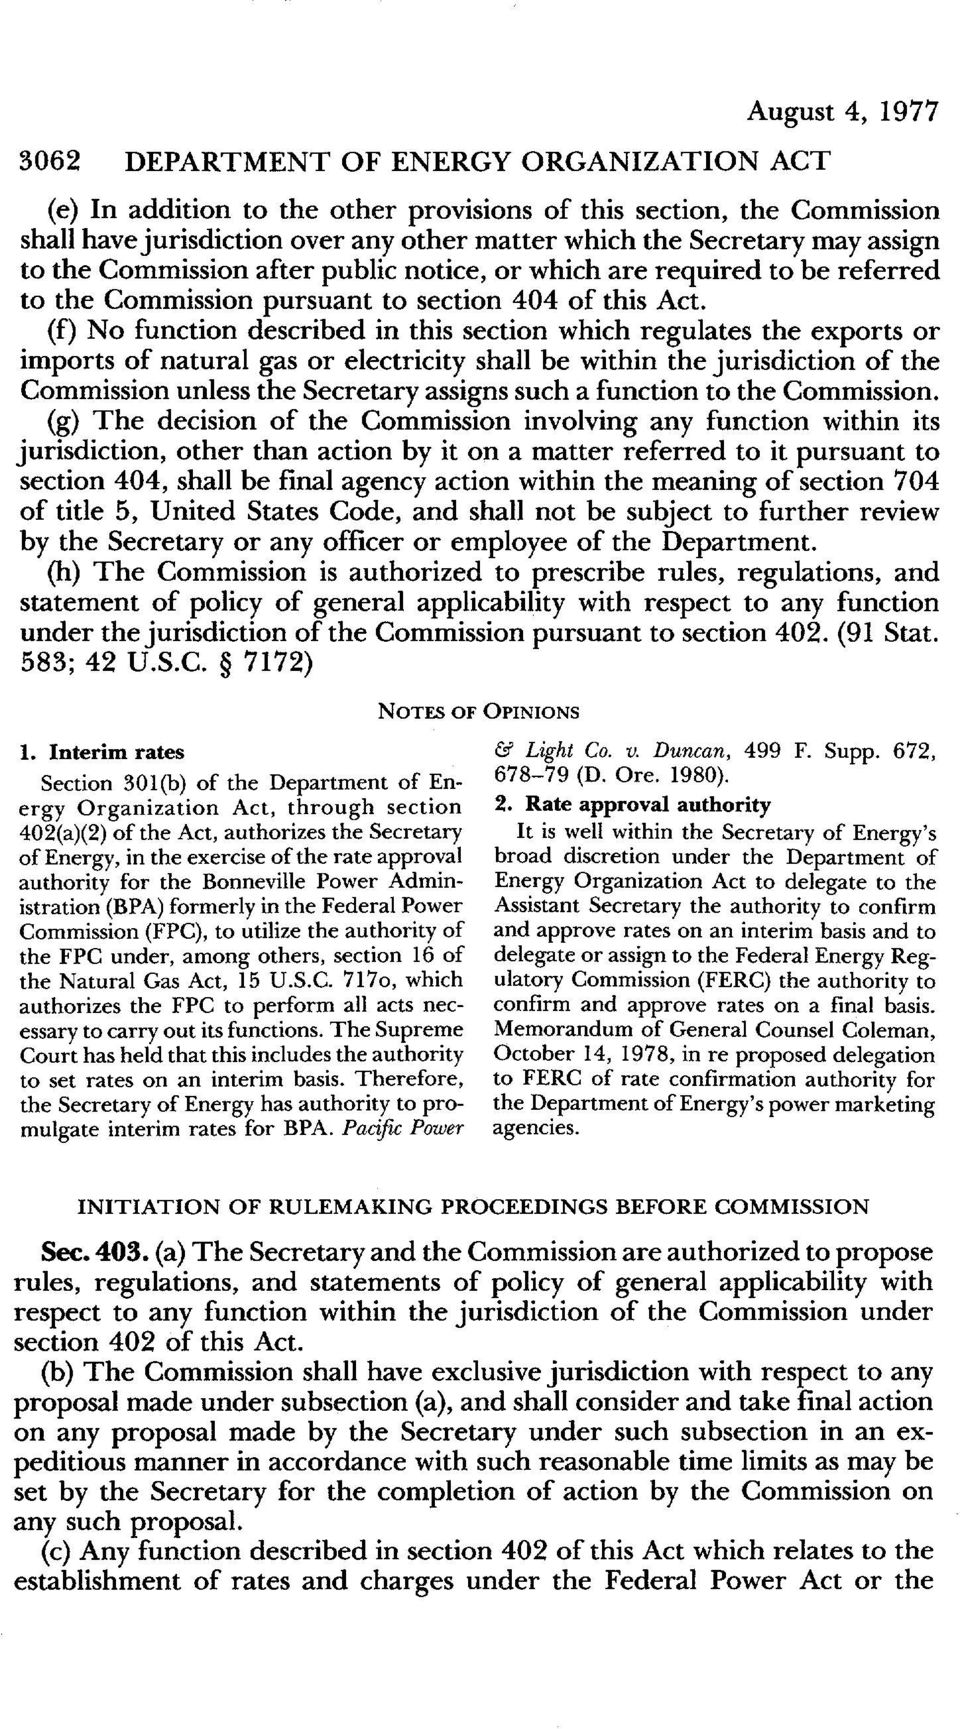 (f) No function described in this section which regulates the exports or imports of natural gas or electricity shall be within the jurisdiction of the Commission unless the Secretary assigns such a